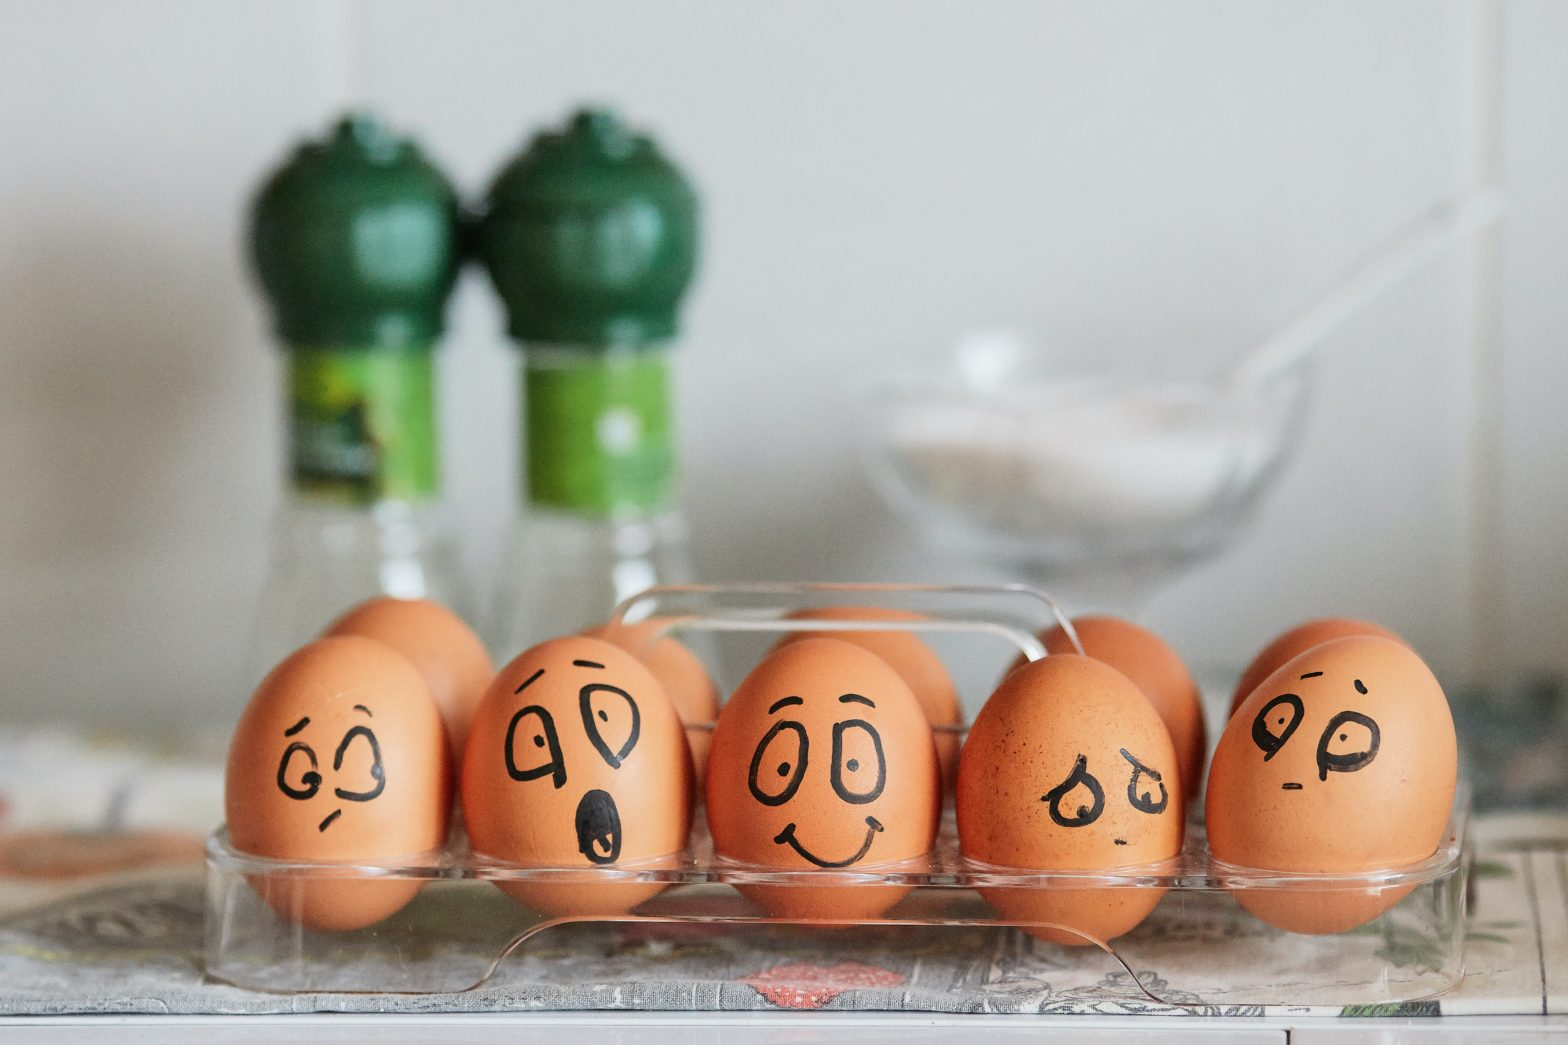 Eggs in a tray with painted faces